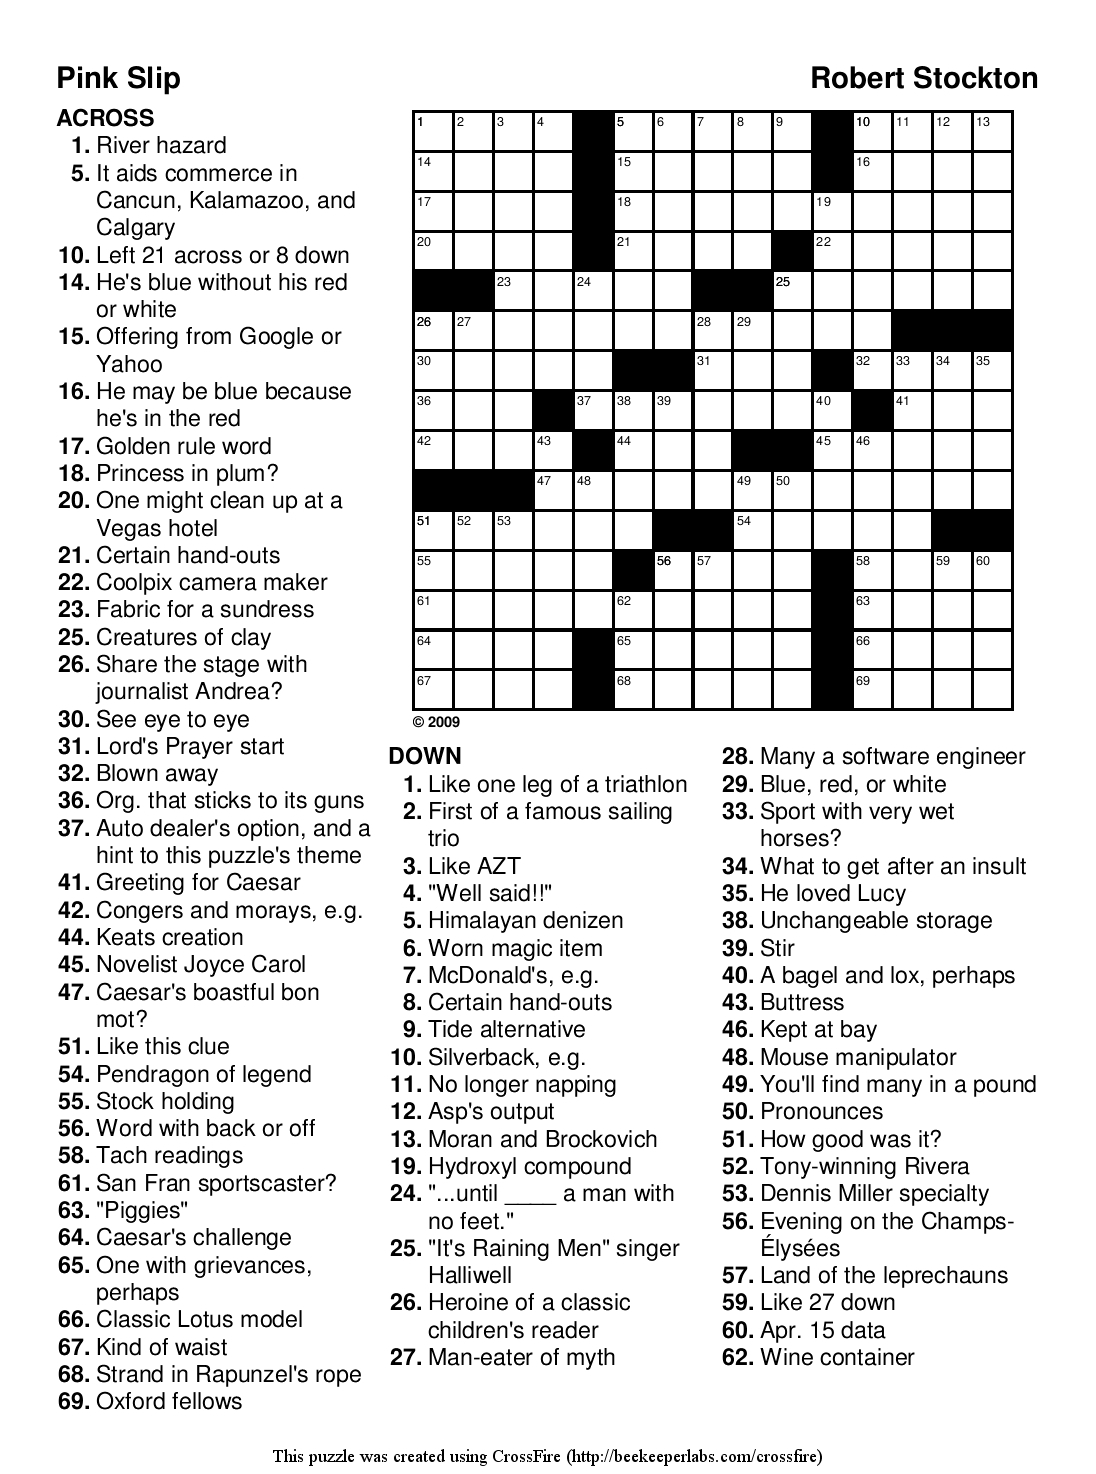 Free Printable Sports Crossword Puzzles | Free Printables - Printable Crossword Puzzles About Sports